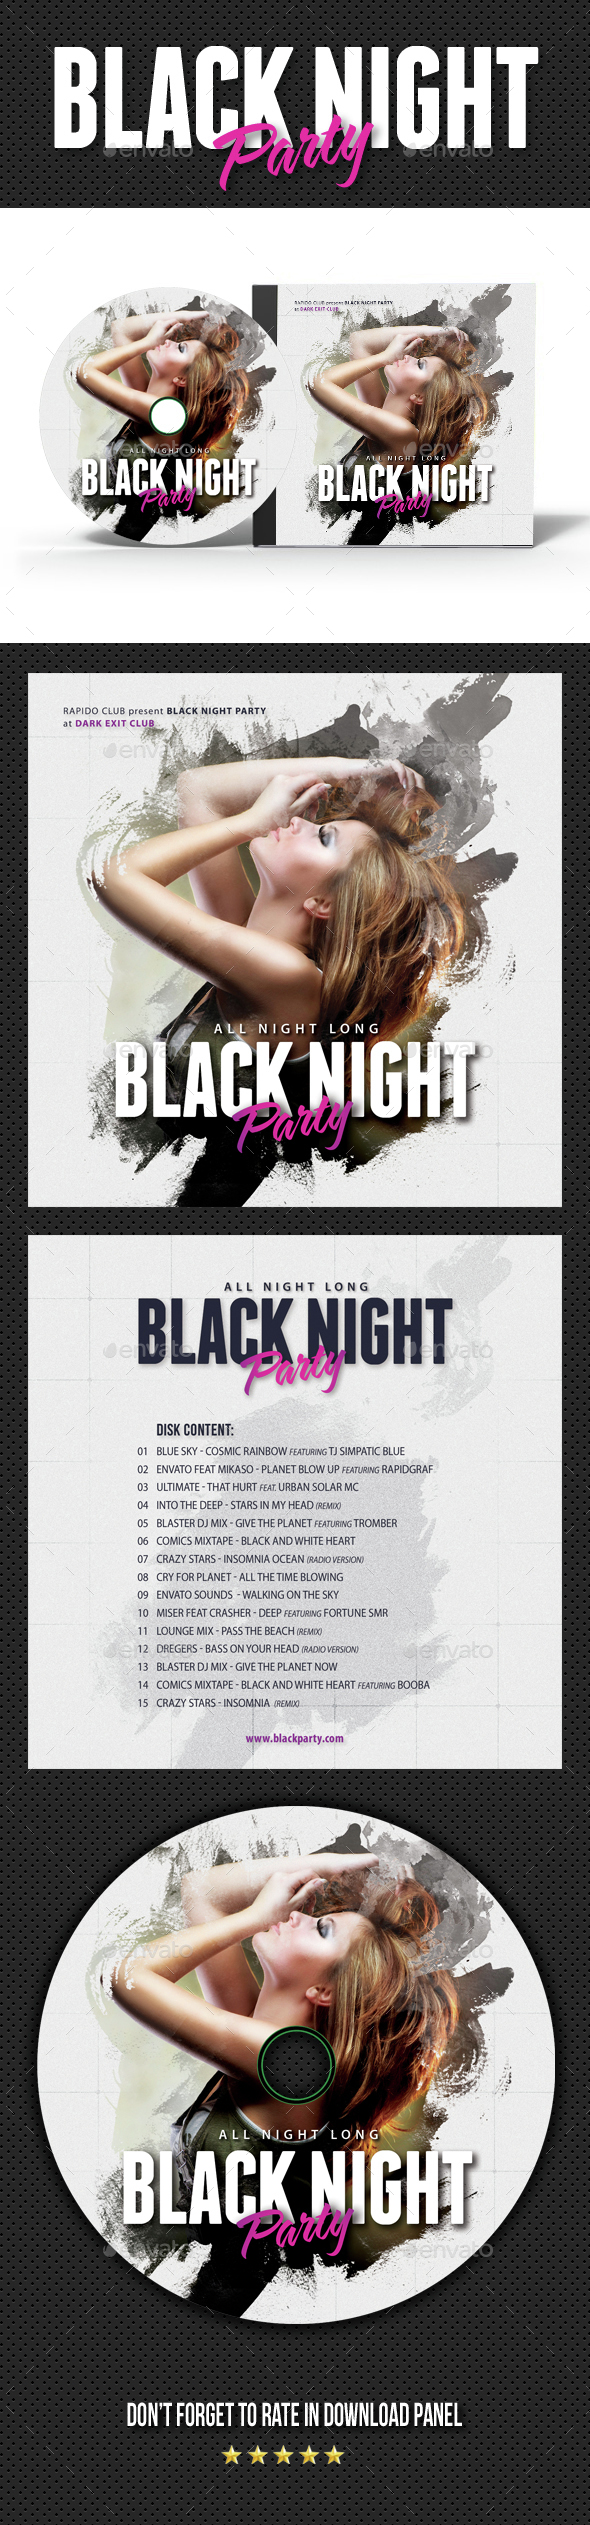 Black Party Event CD Cover Artwork - CD & DVD Artwork Print Templates